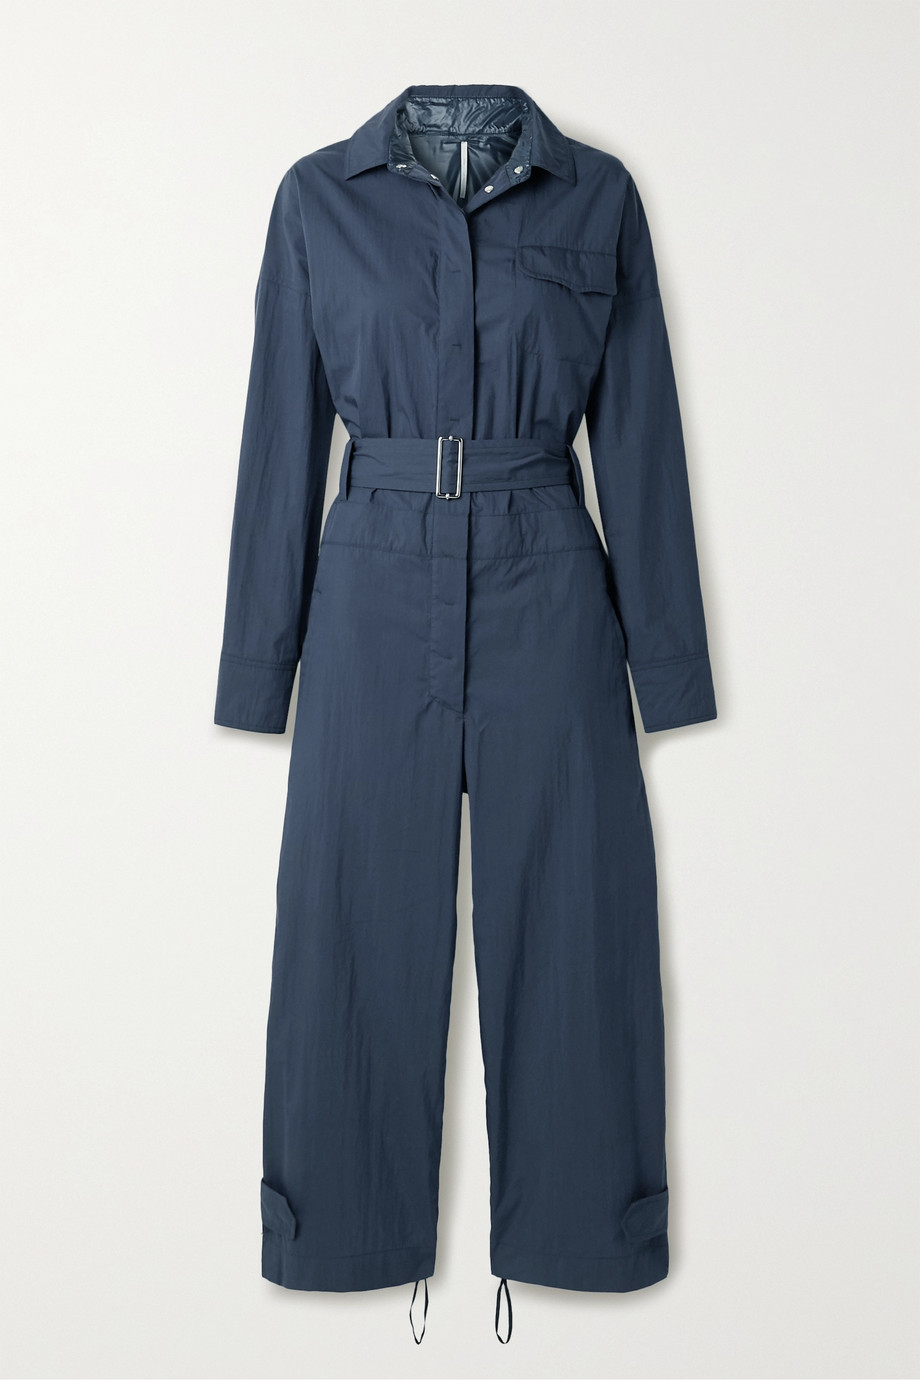 Moncler Genius + 2 Moncler 1952 Tuta belted cotton-blend jumpsuit